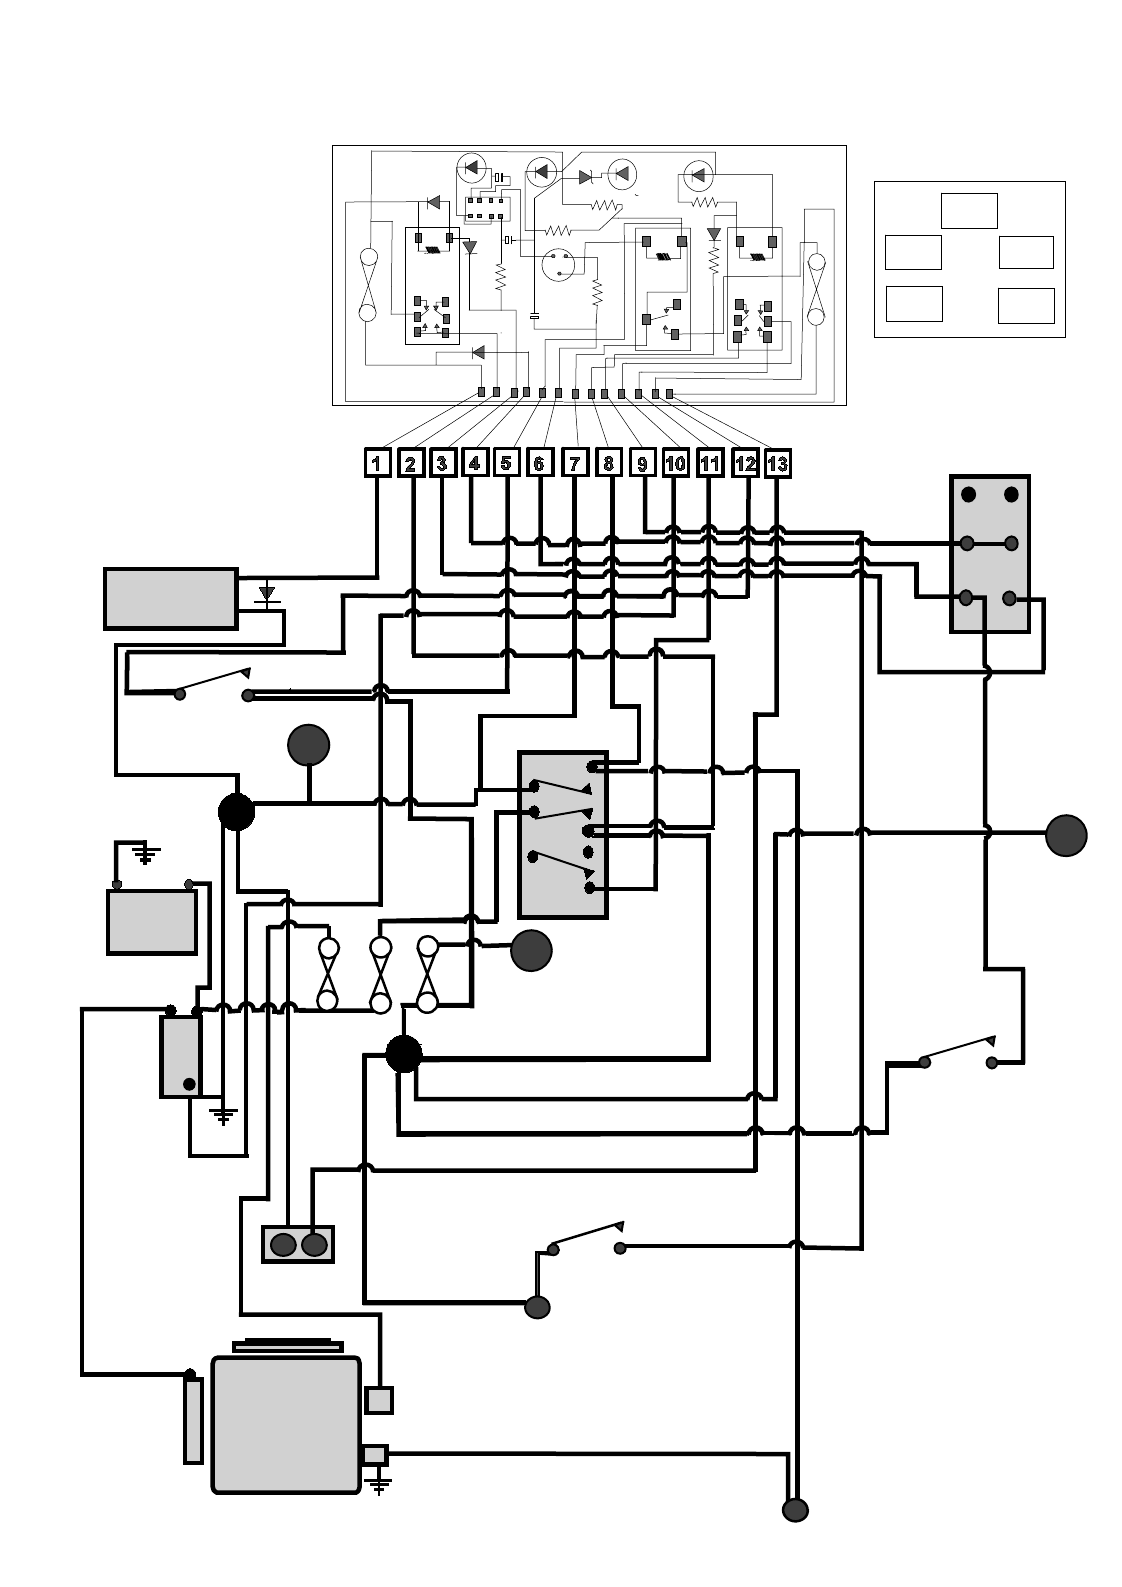 Garden tractor on wiring diagram of star delta starter